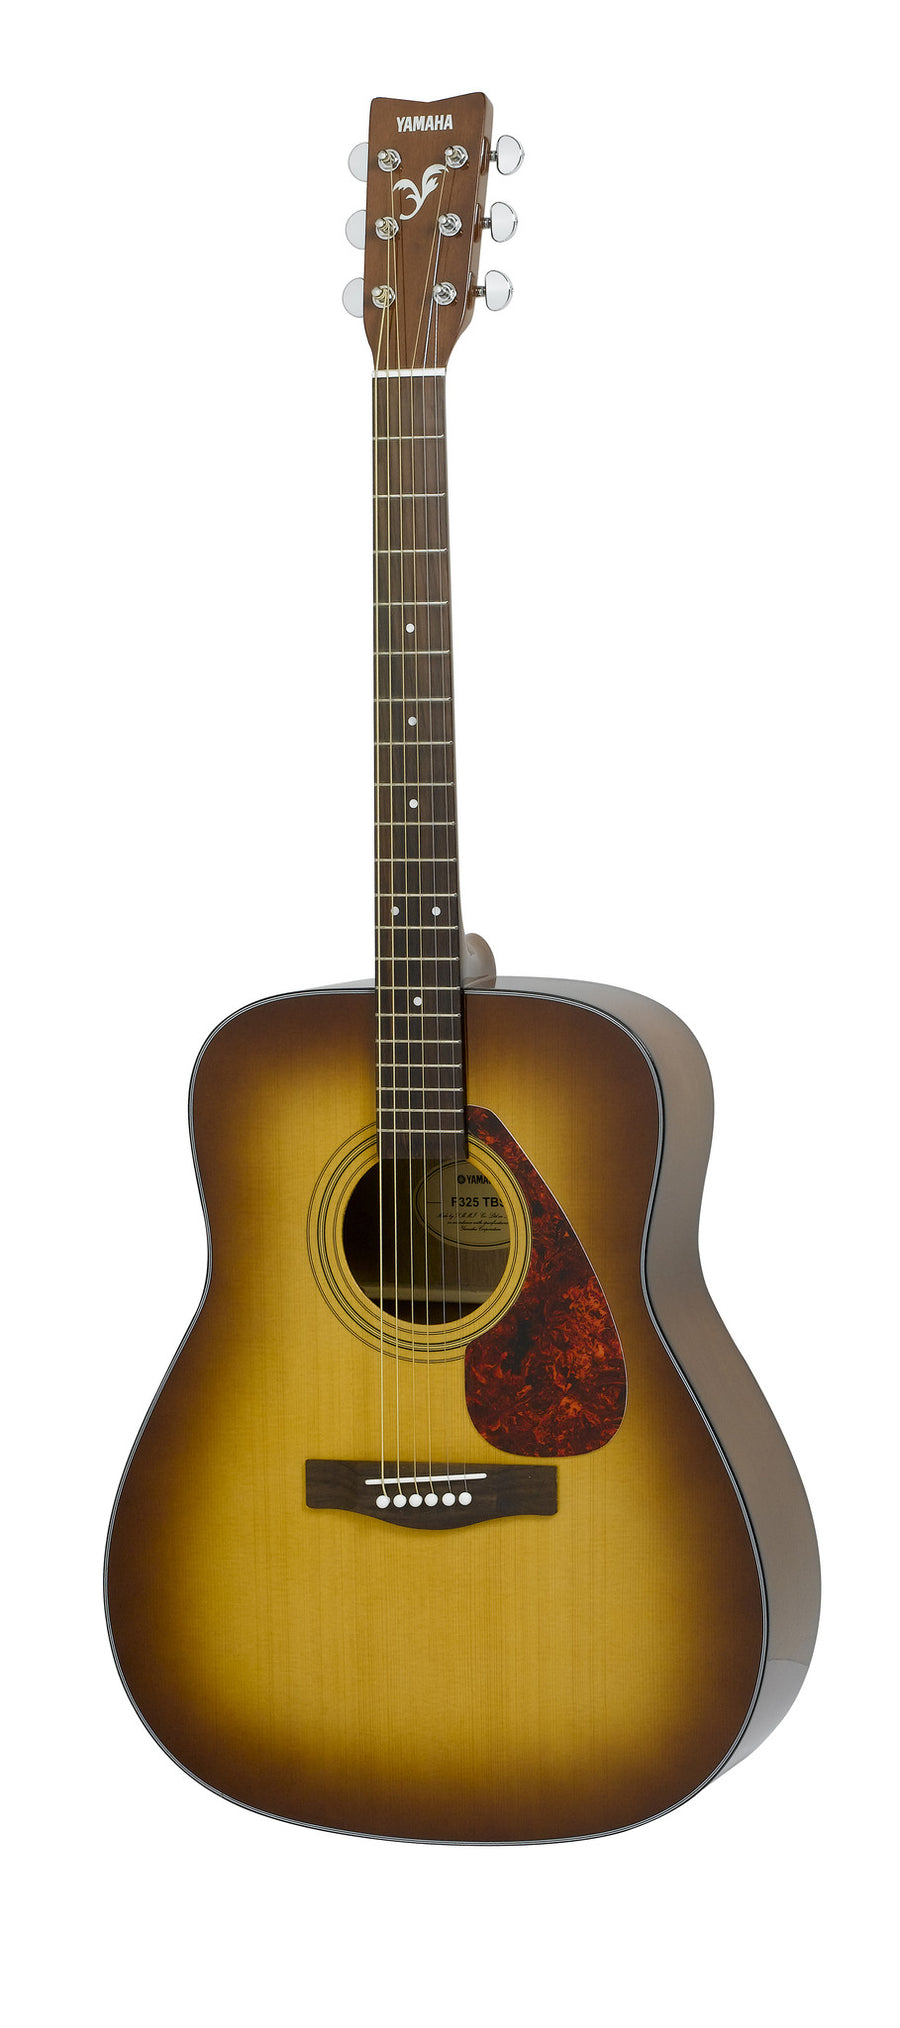 Yamaha F325DTBS Dreadnought Acoustic Guitar